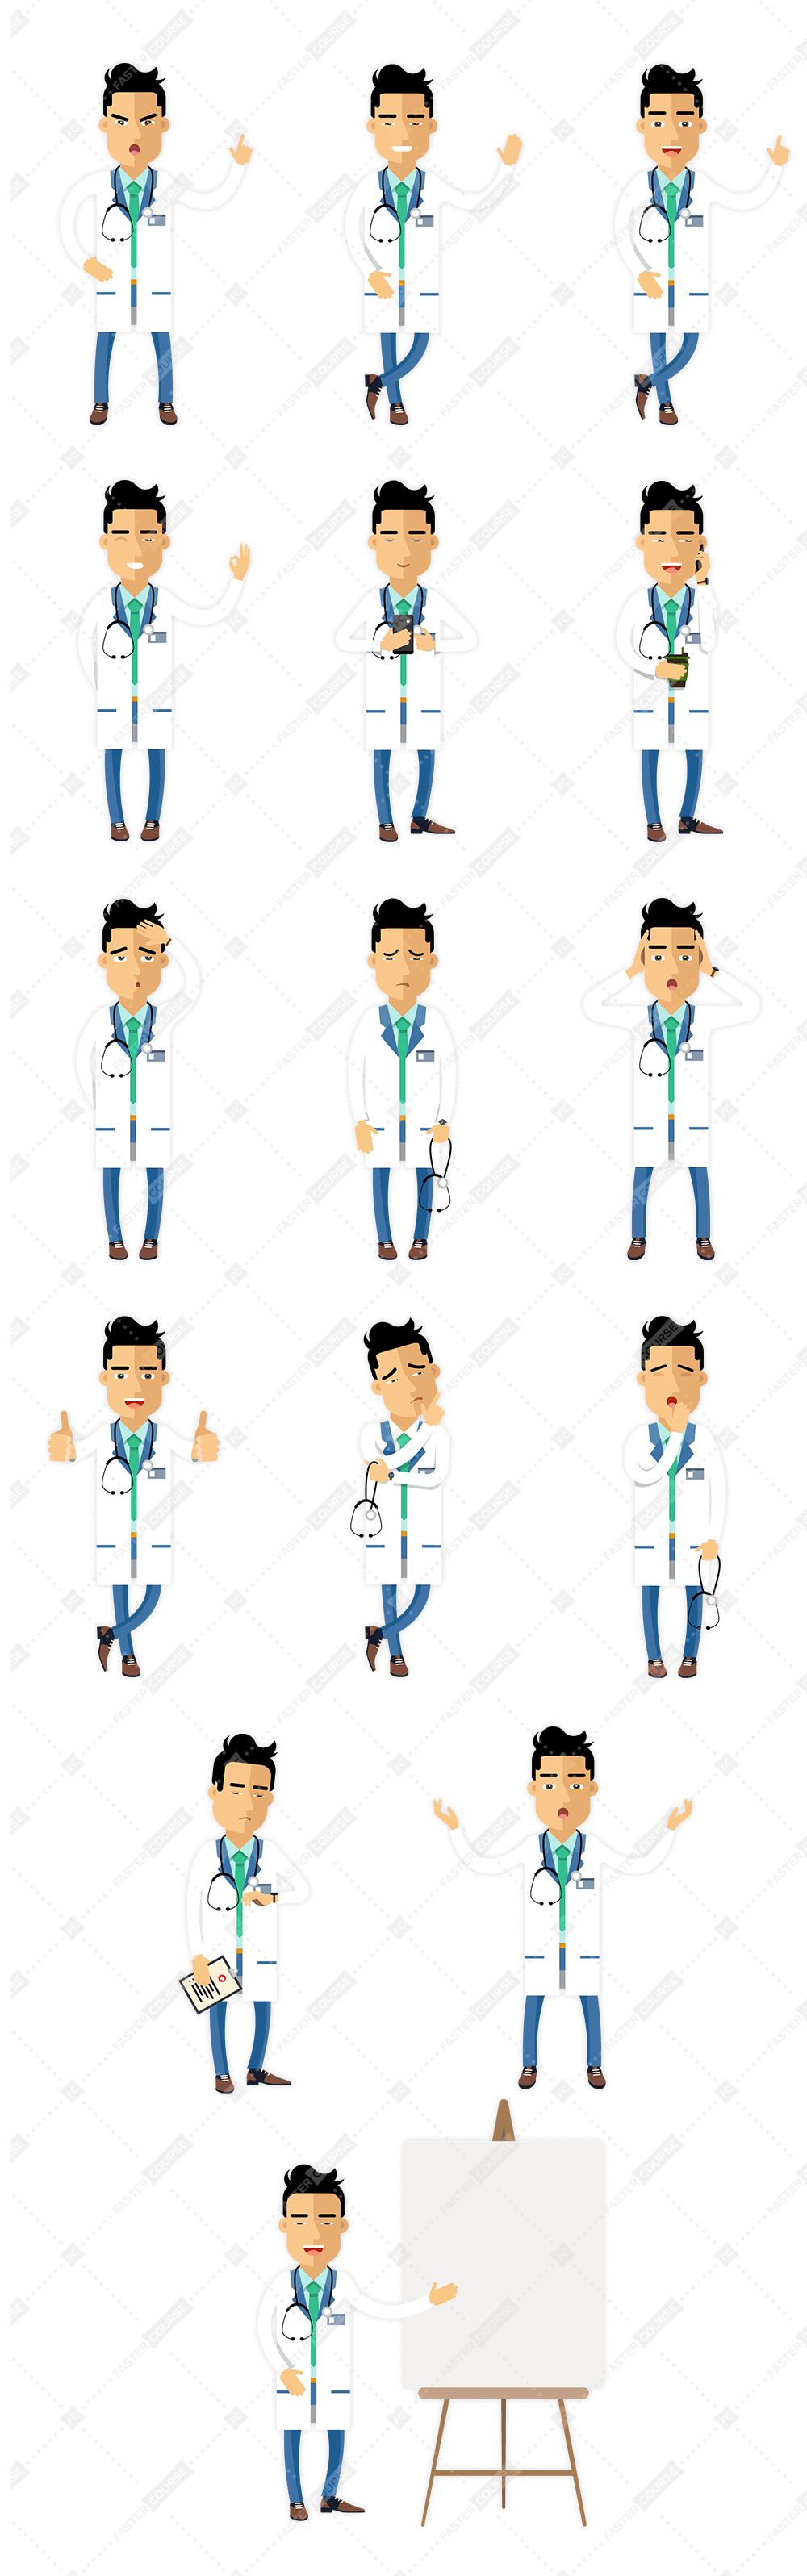 Characters_All_Poses_Hospital_Micahel_wm